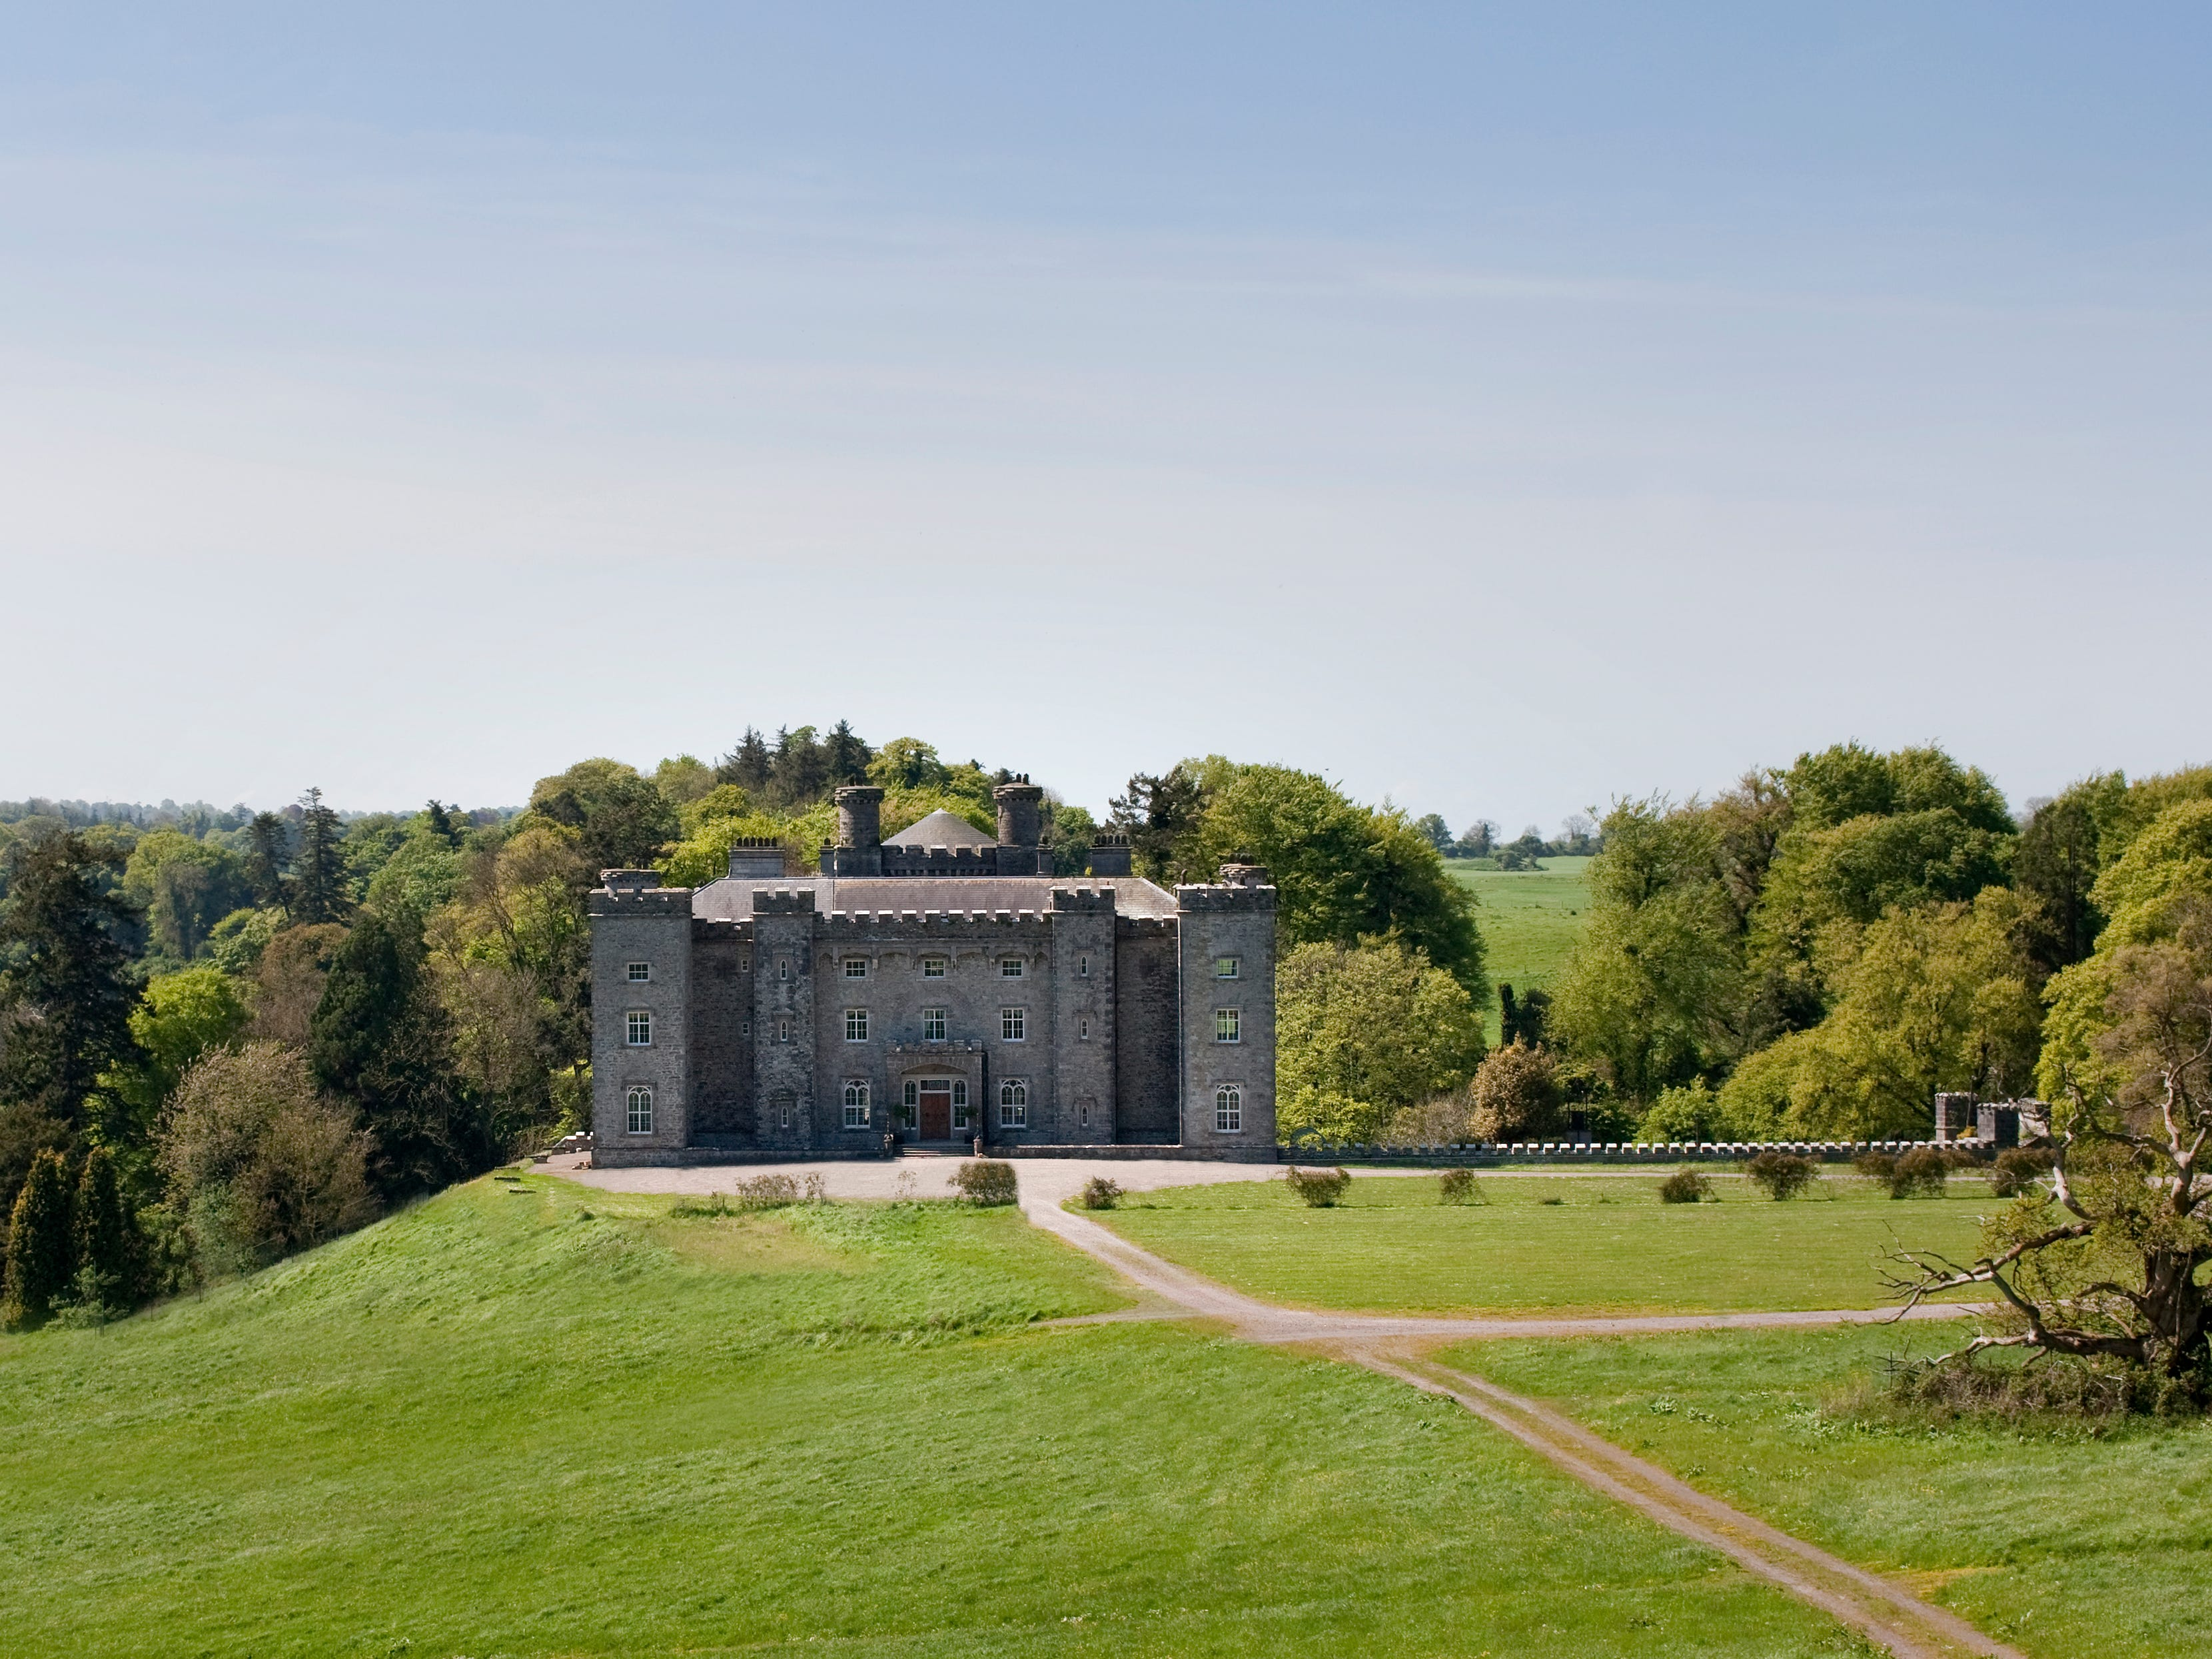 "Slane Castle is the home of Slane Irish Whiskey, which began distillation in late 2017. The castle and distillery are located 30 miles north of Dublin. ""Not many people get to see a dream realized and I'm lucky enough to have witnessed this happen with the opening of Slane Distillery,"" says co-founder Alex Conyngham."